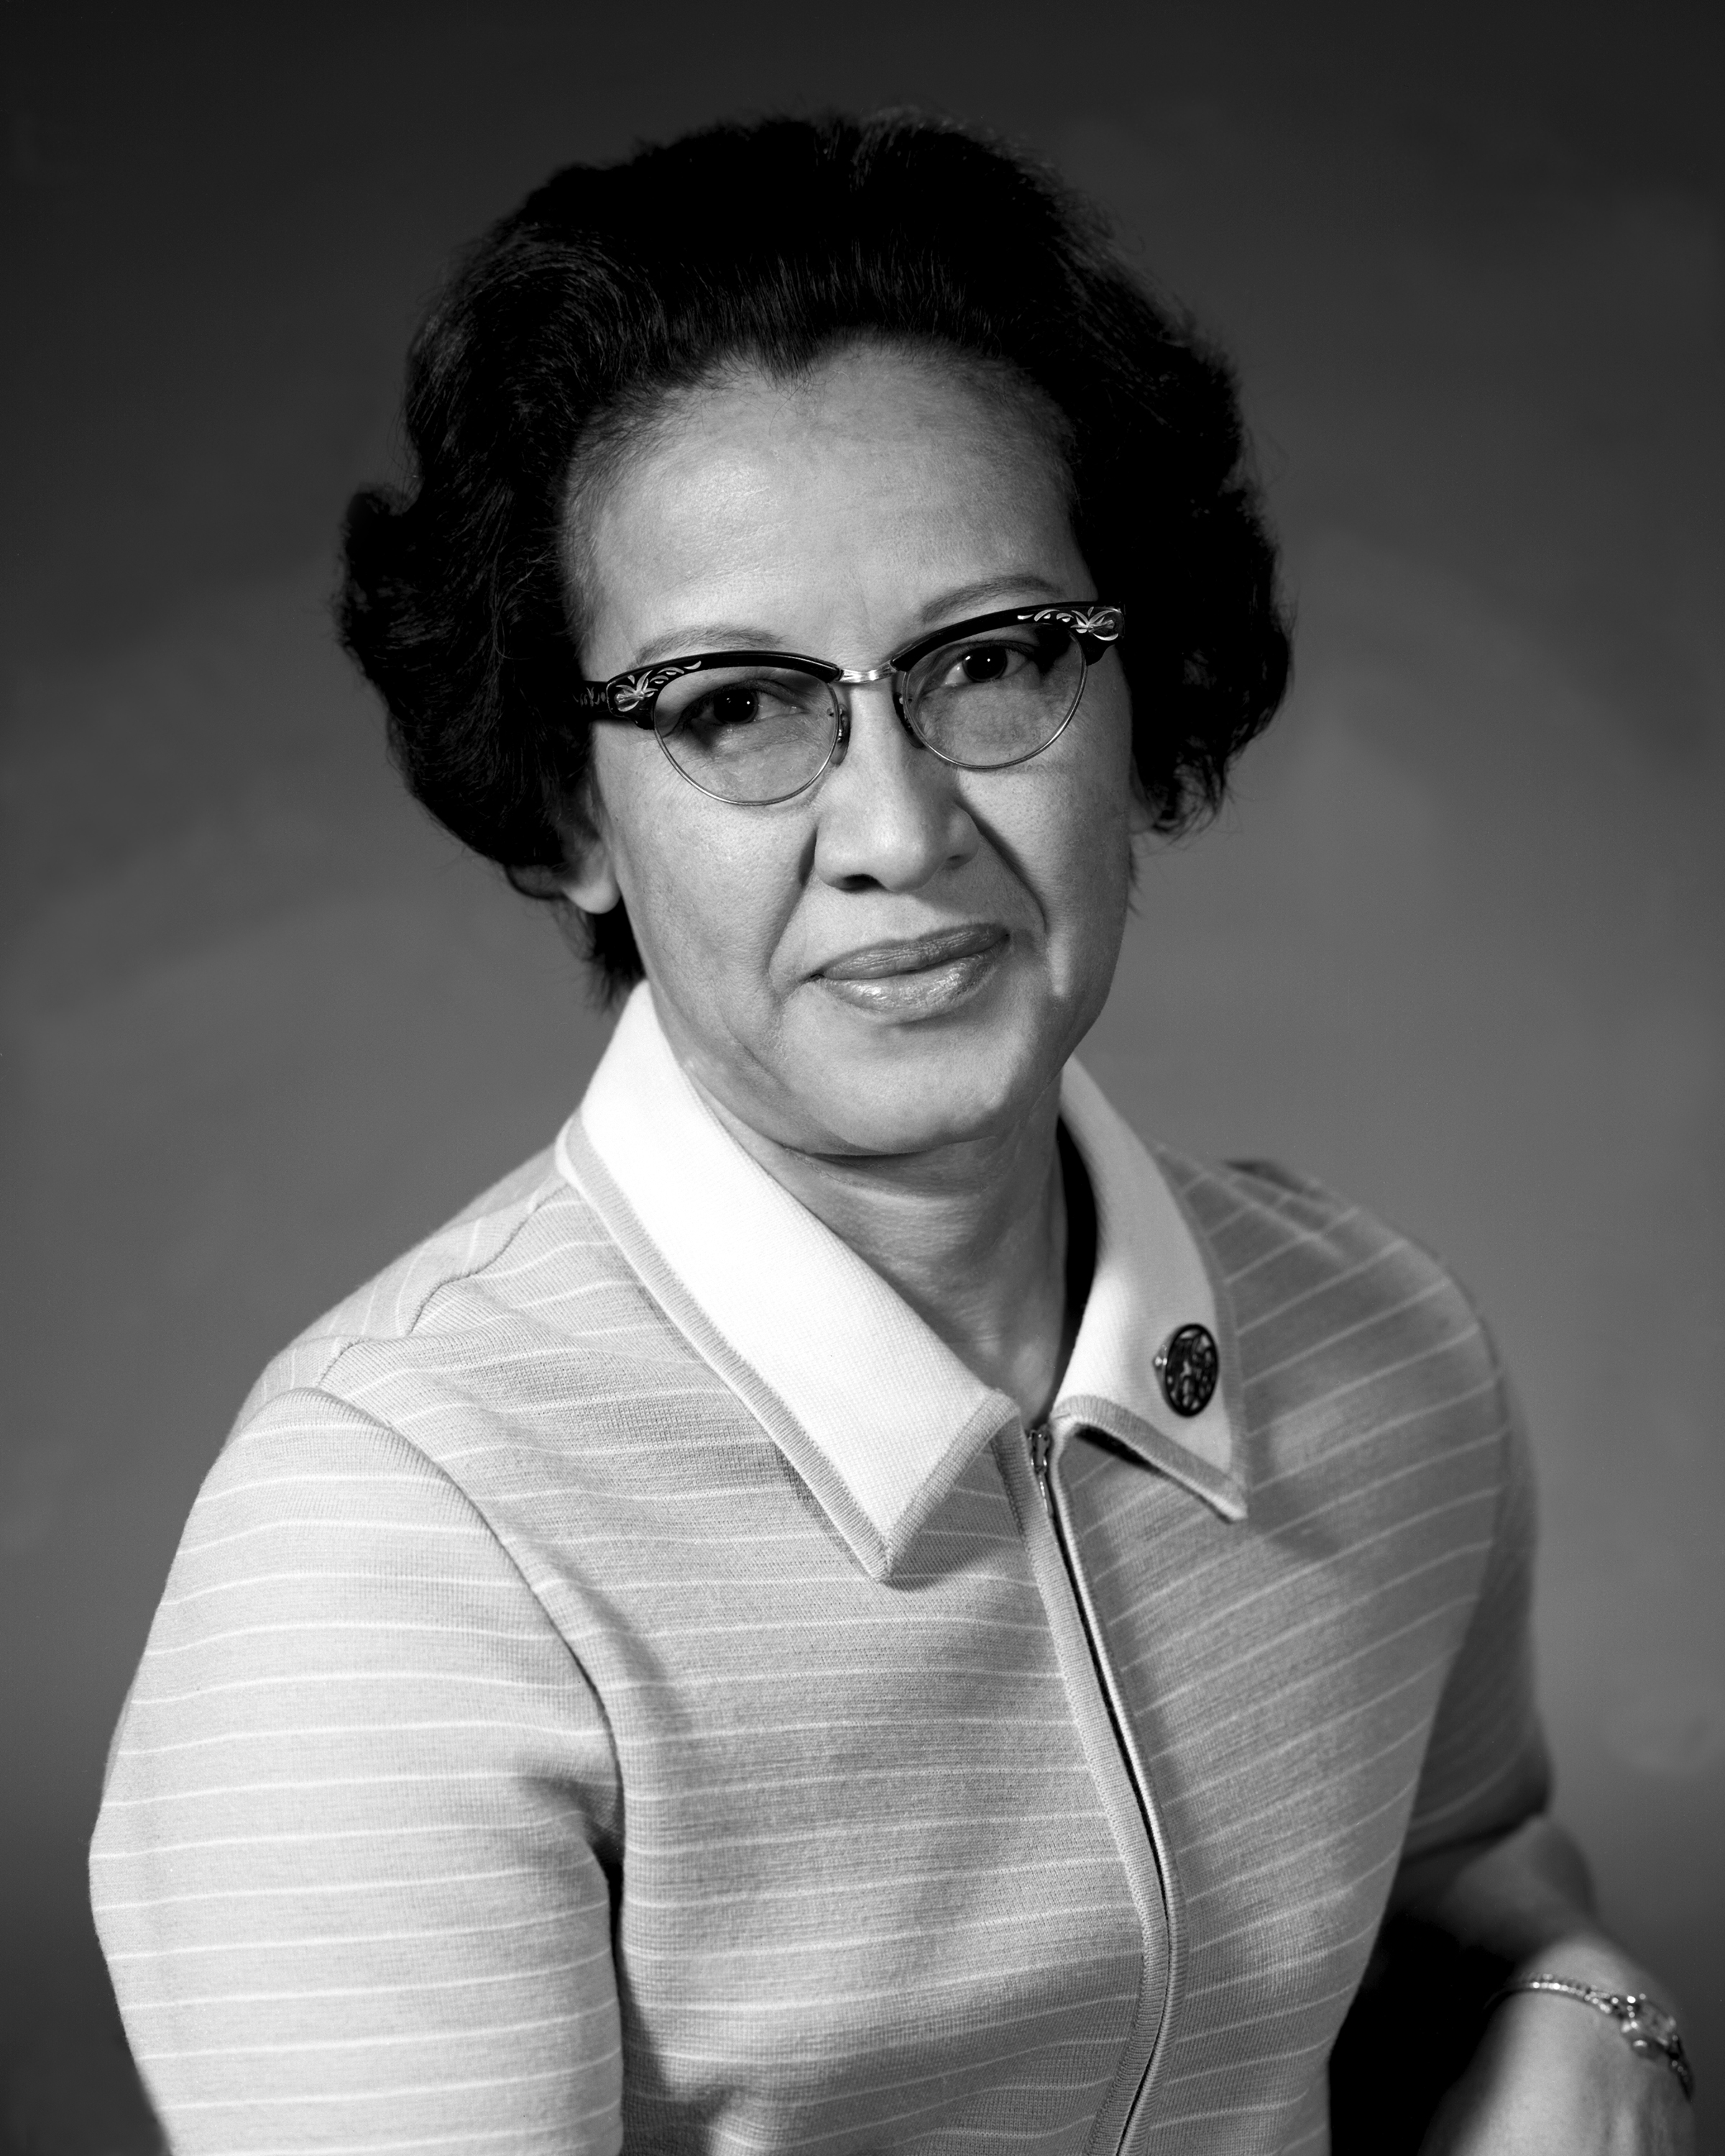 Katherine Johnson - An African-American mathematician who worked at NASA, and who's life was the focus of the movie Hidden Figures